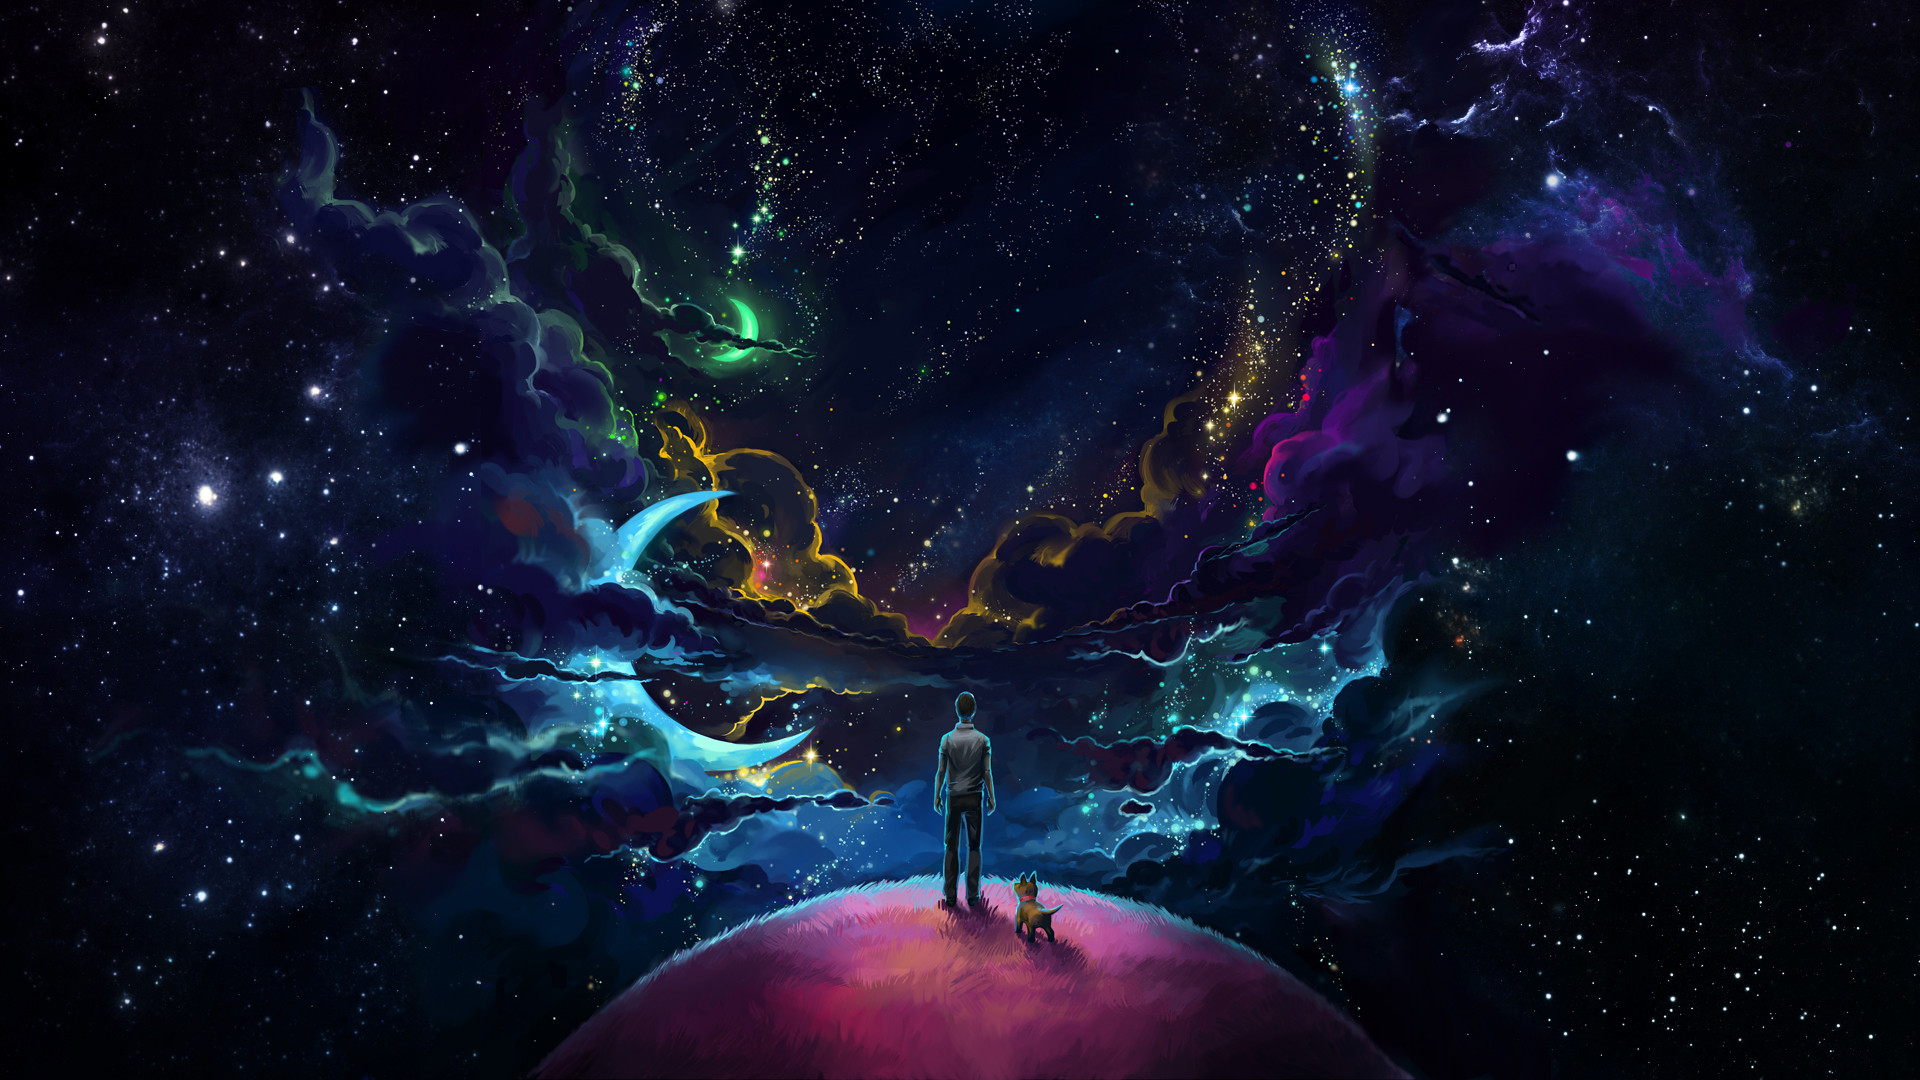 Atharva's Poem On 'View Of The Universe'